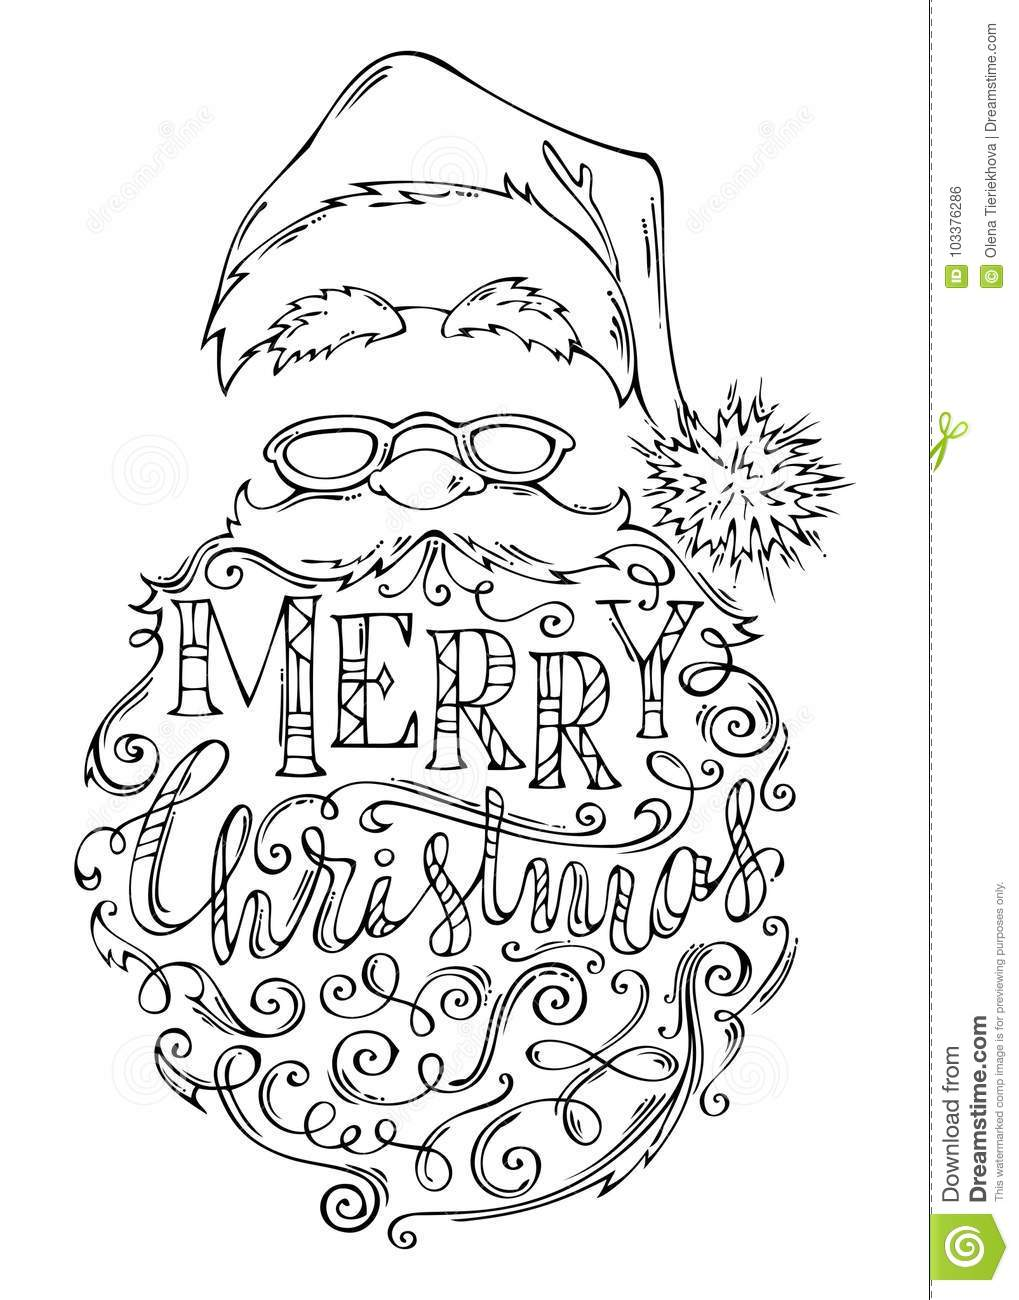 Santa S Christmas Coloring Book With Doodles Merry Lettering Stock Vector Illustration Of